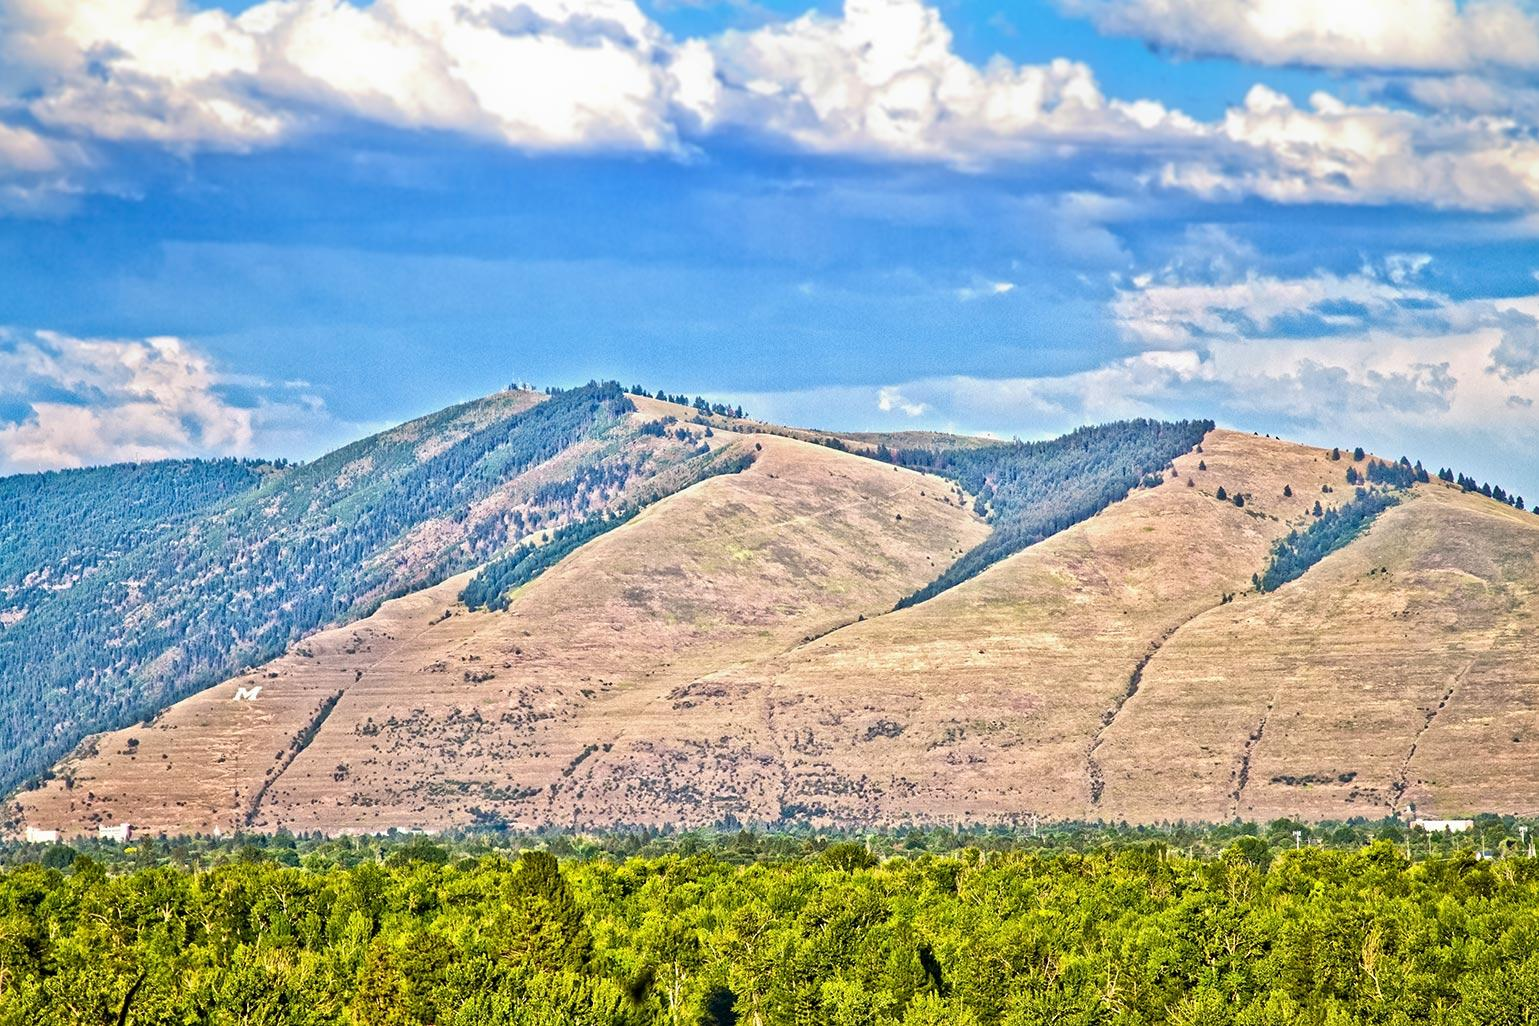 A view of the Missoula Valley